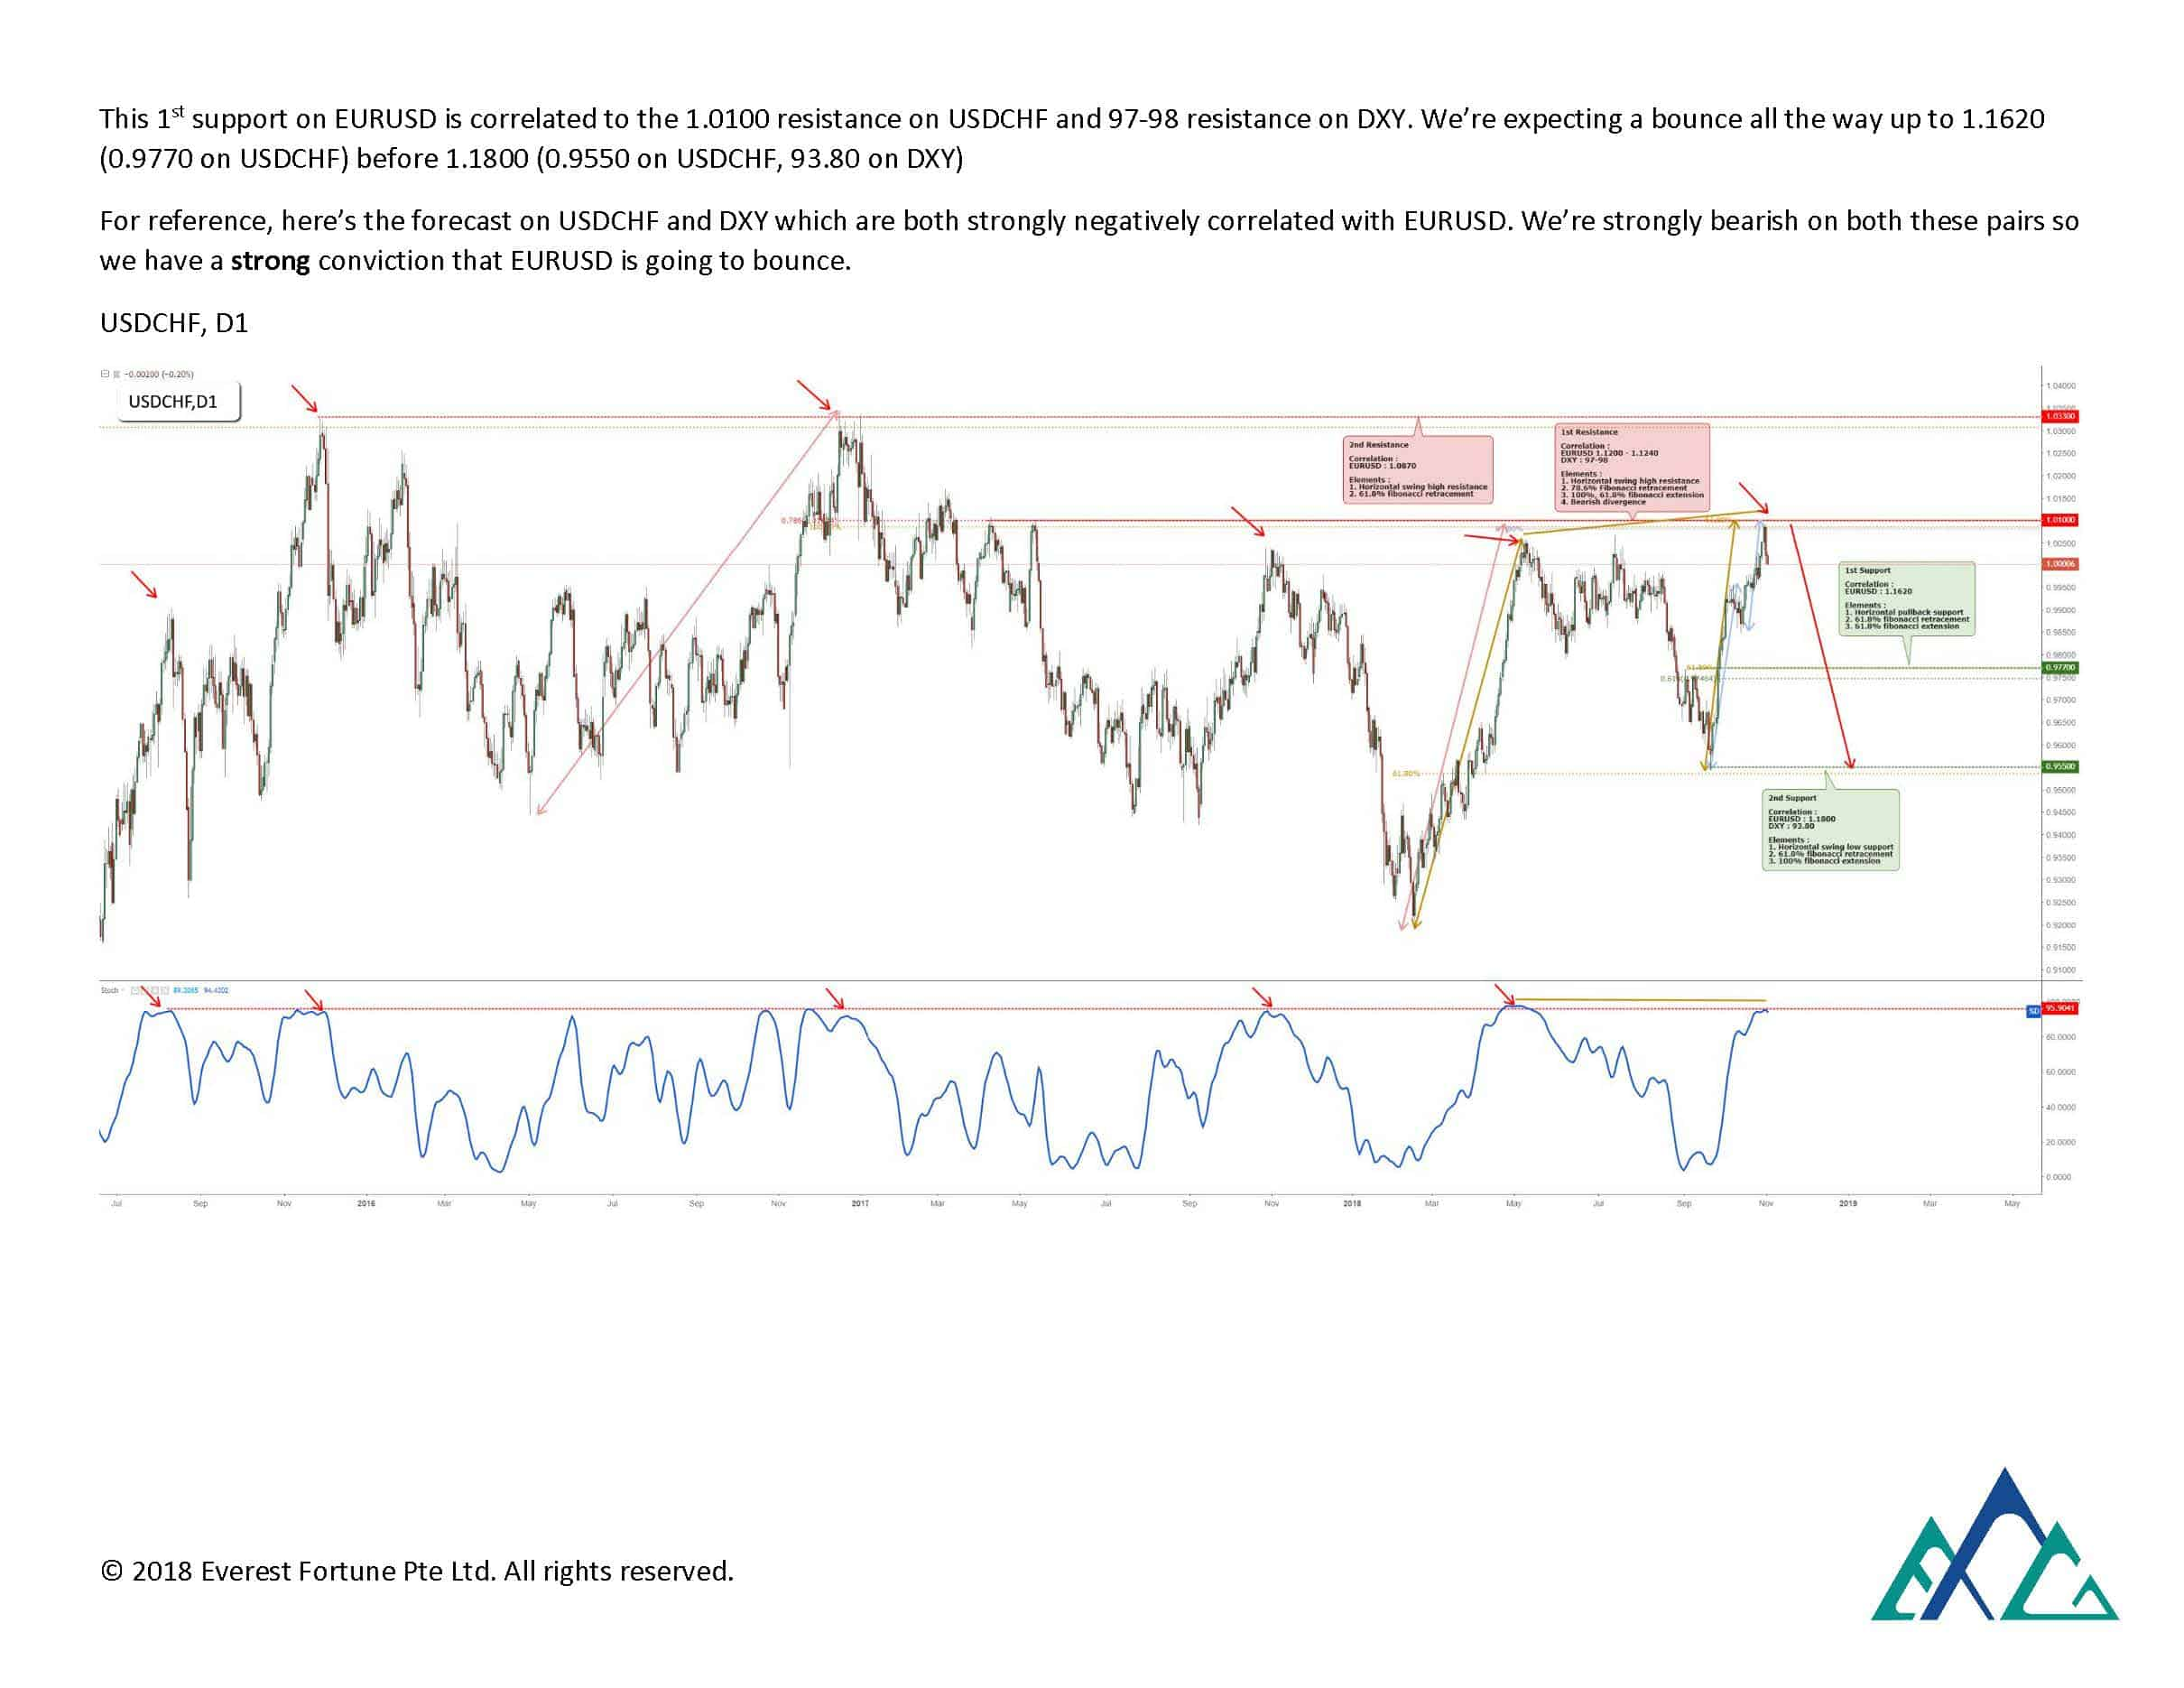 Monex Europe EURUSD Forecast December 2018 to June 2019_Page_2